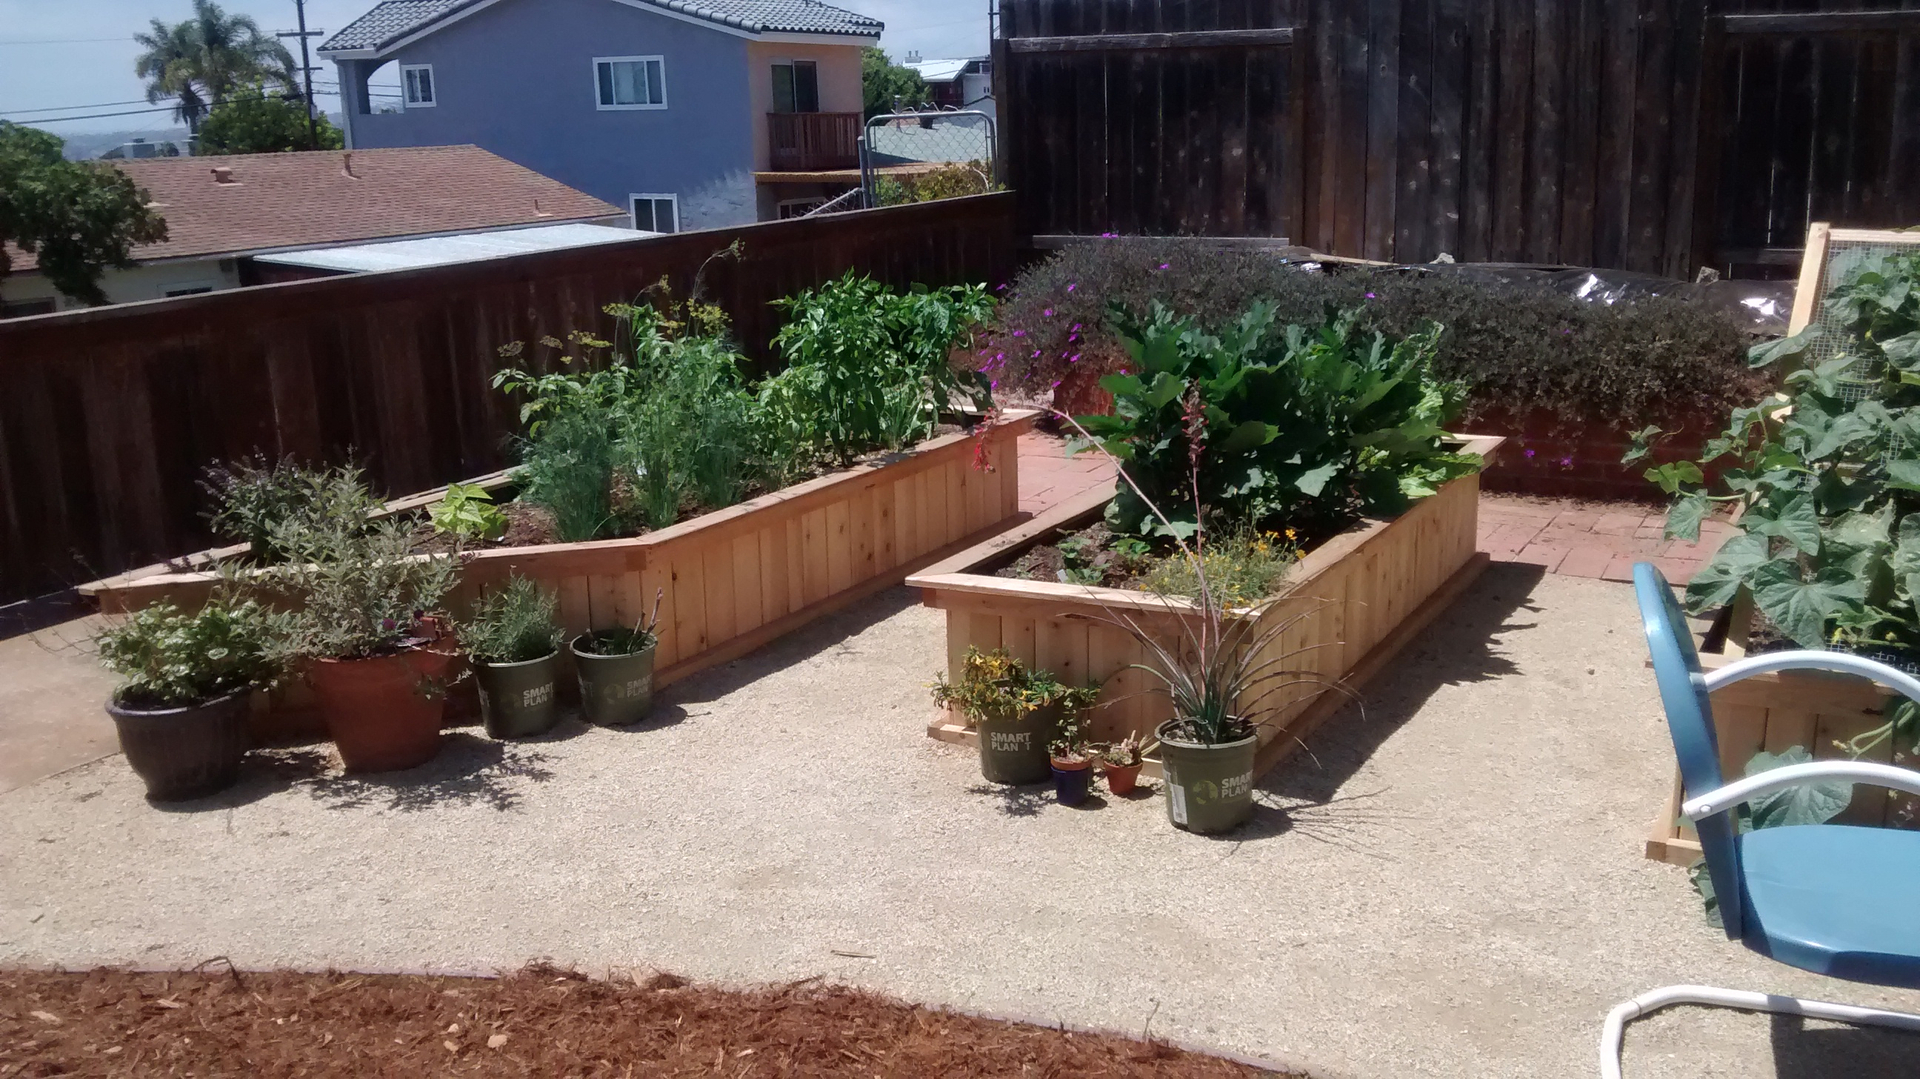 garden s specializes in kit bed supply and buy recommended gardening cedar gardener boxes beds raised